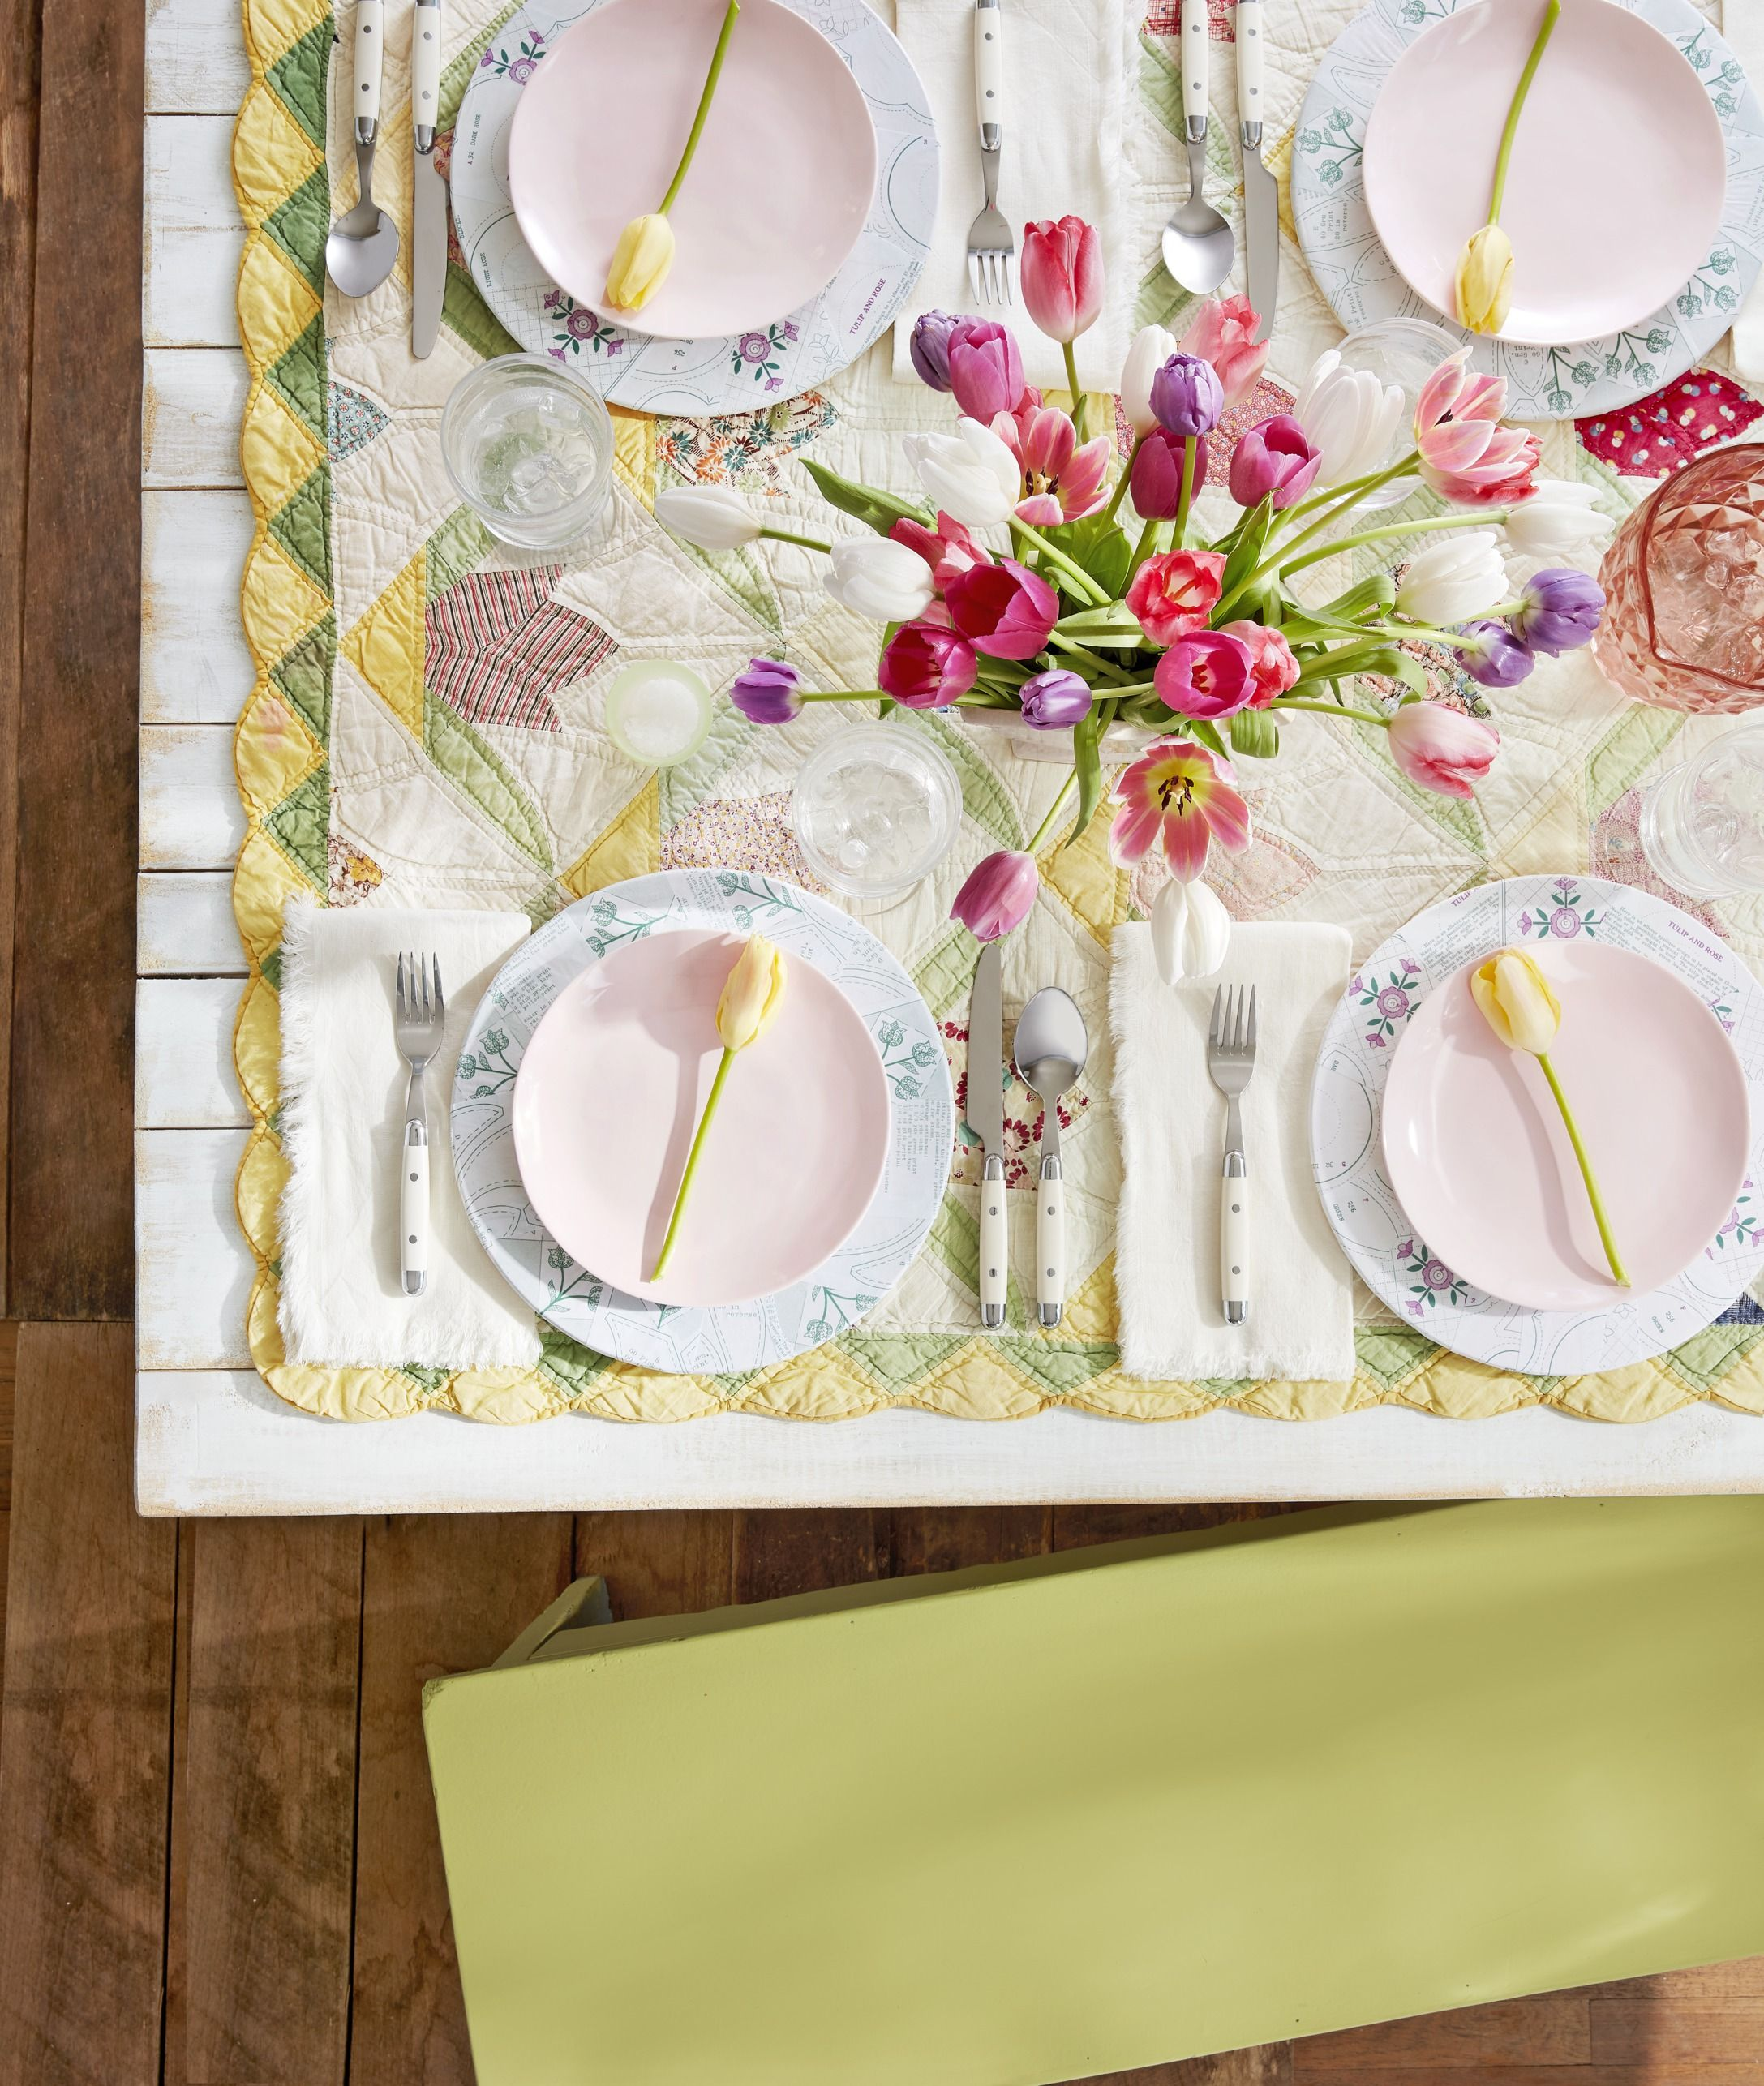 57 Spring Centerpieces And Table Decorations Ideas For